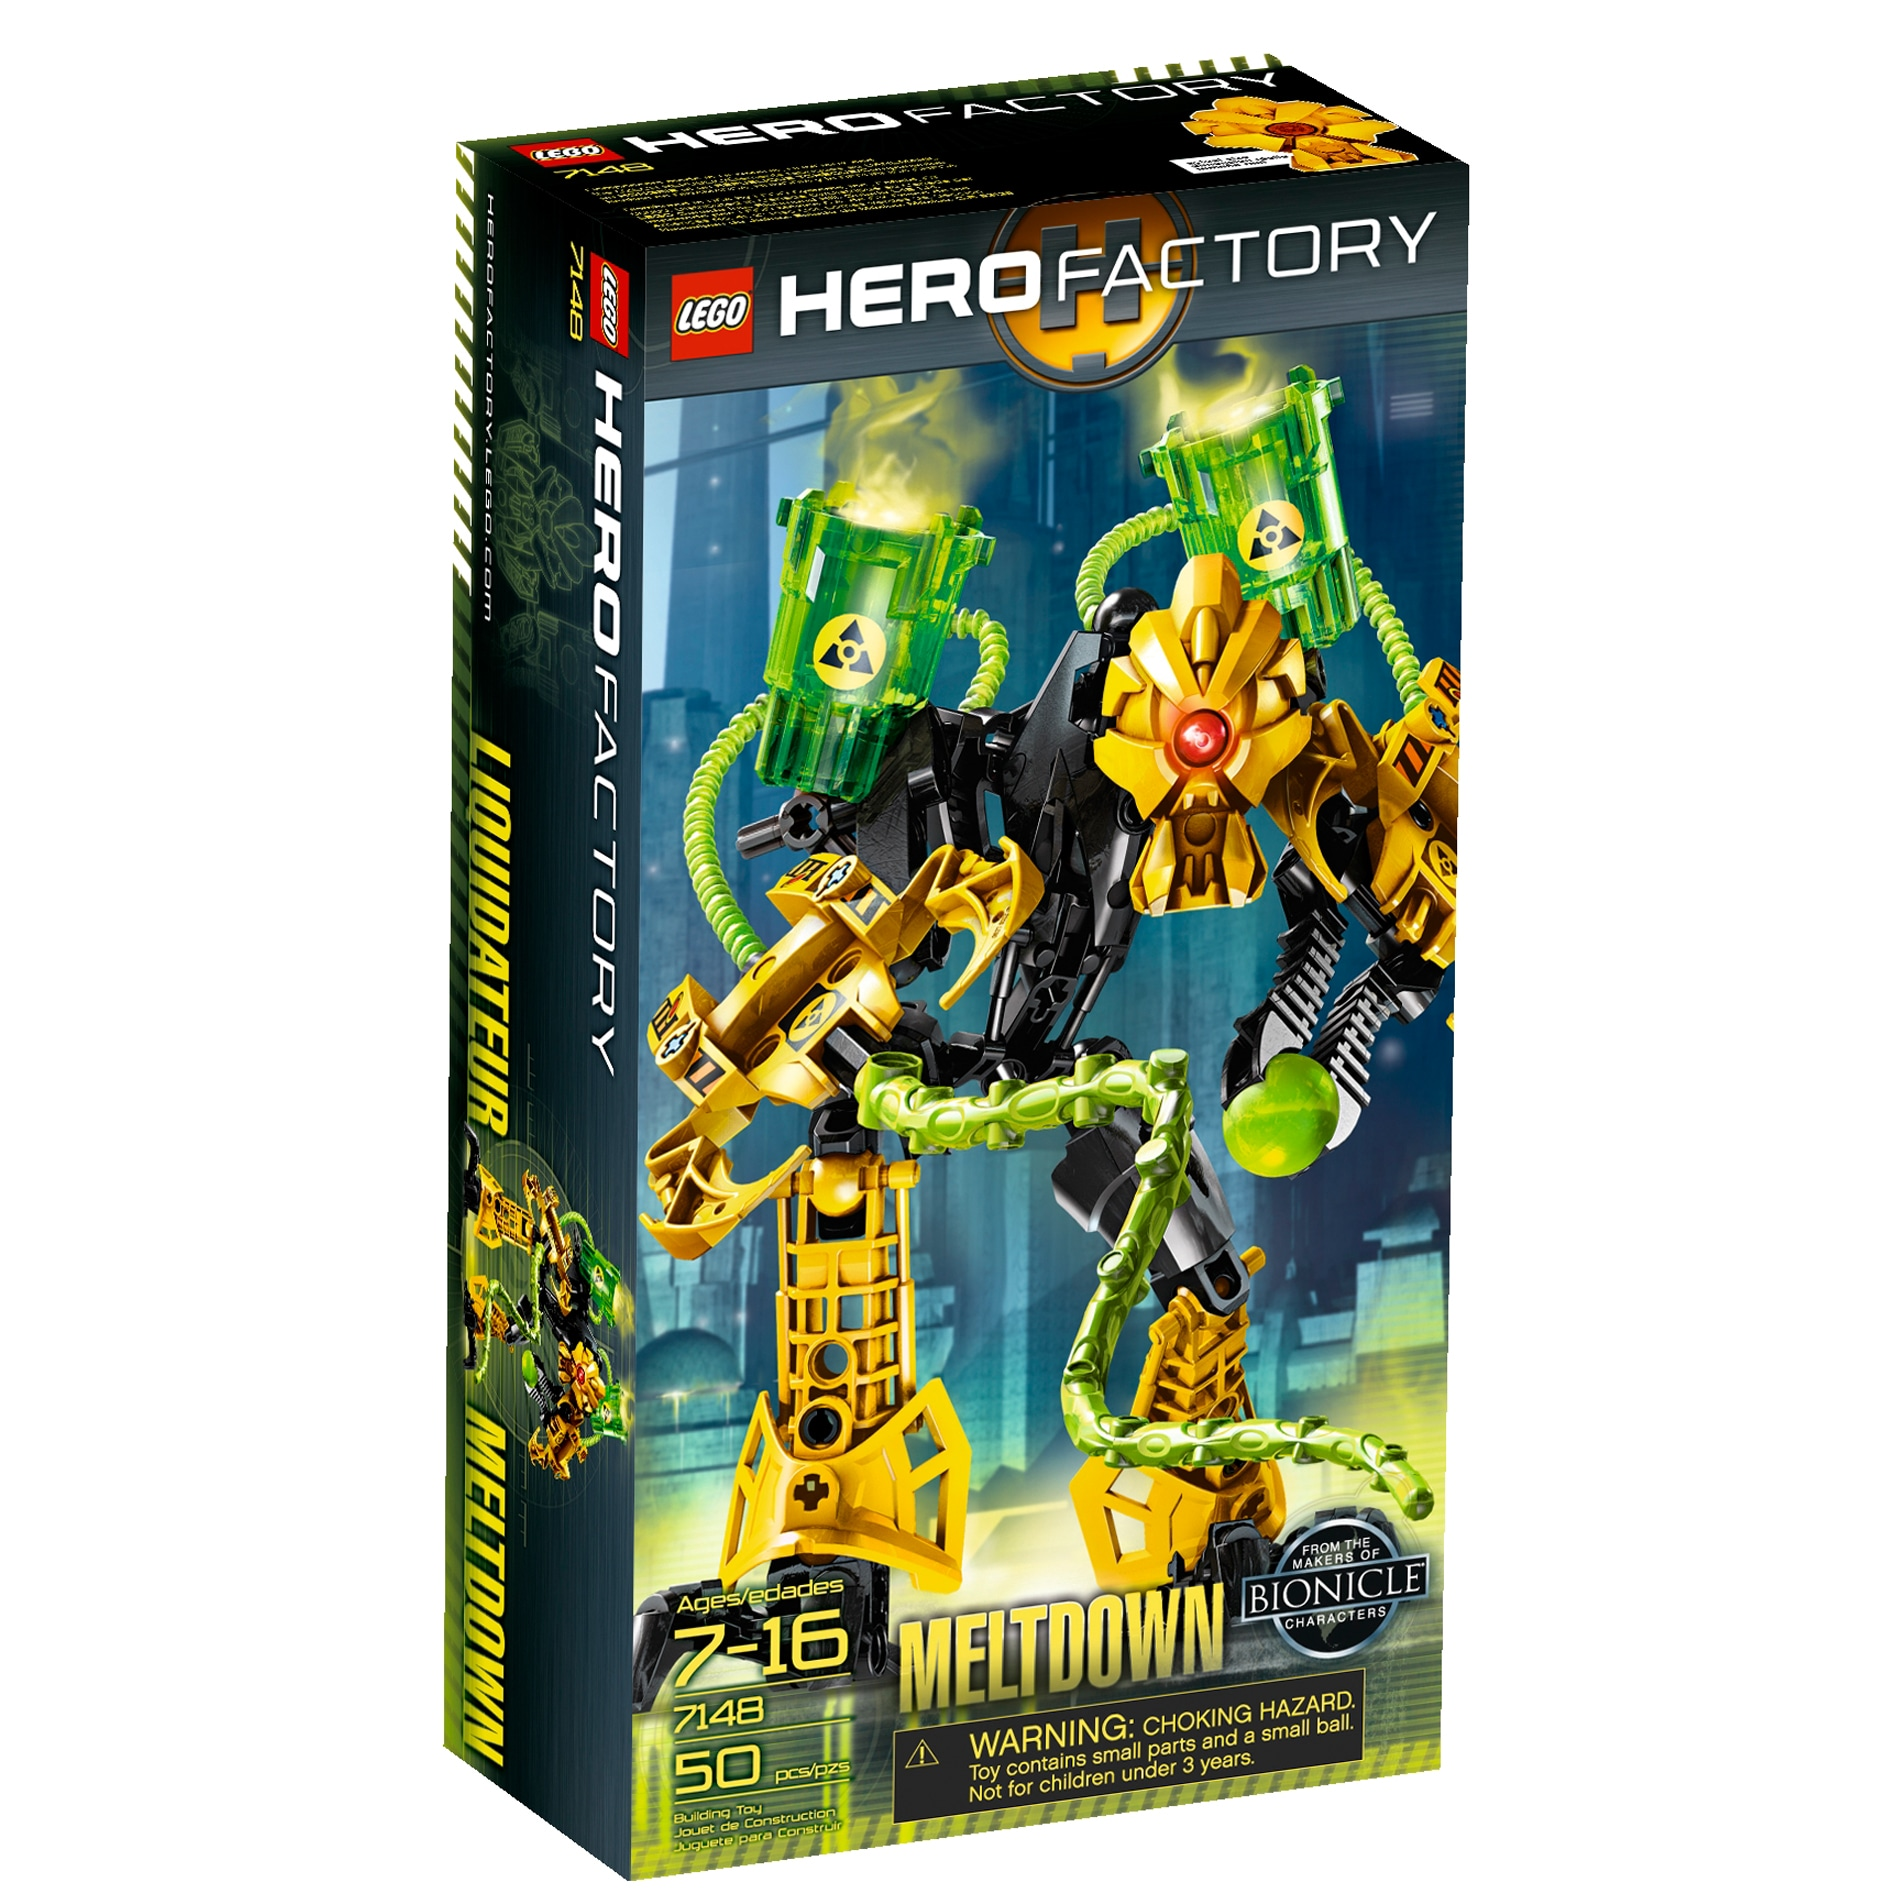 LEGO Meltdown Toy Set - Thumbnail 0